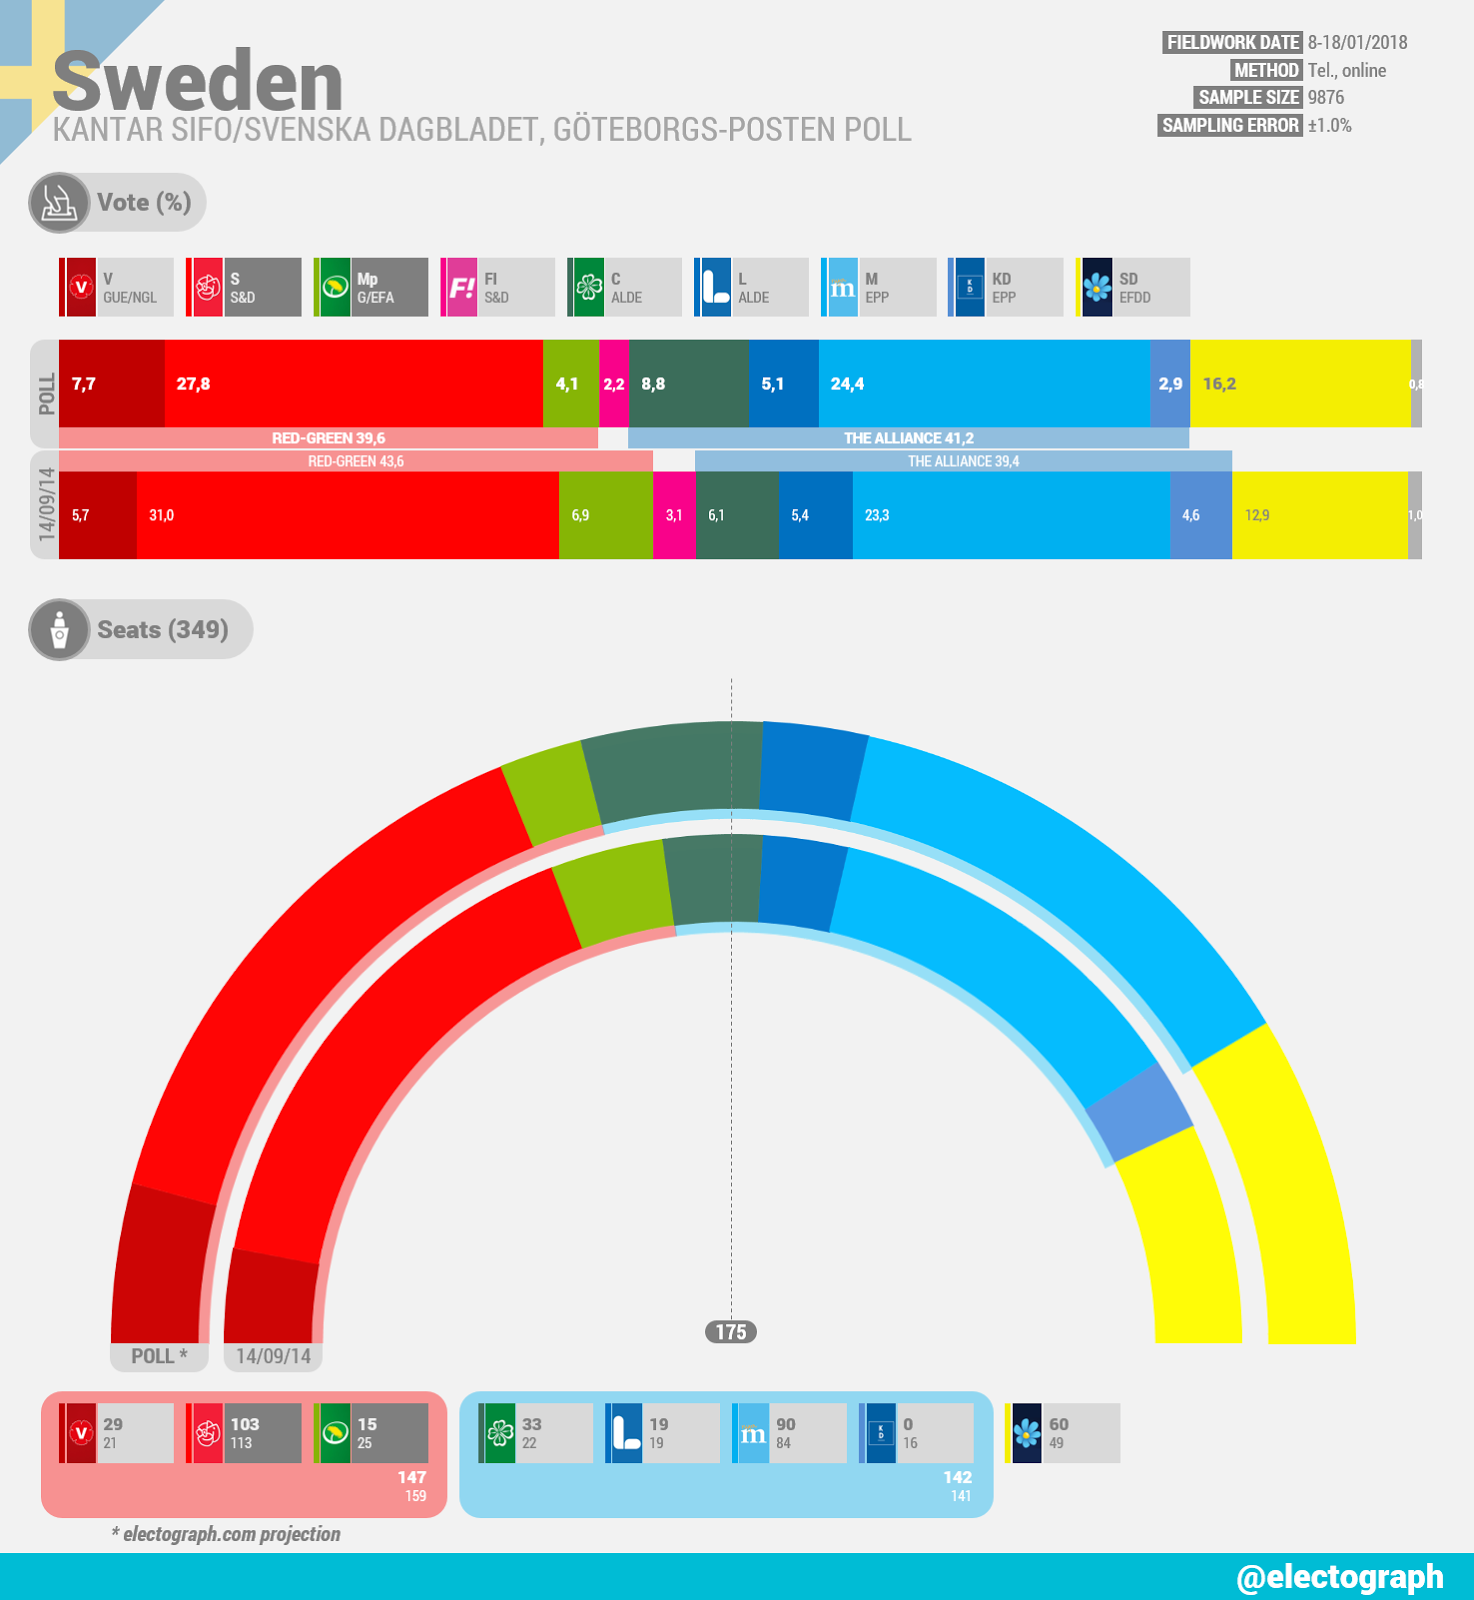 SWEDEN Kantar SIFO poll chart January 2018